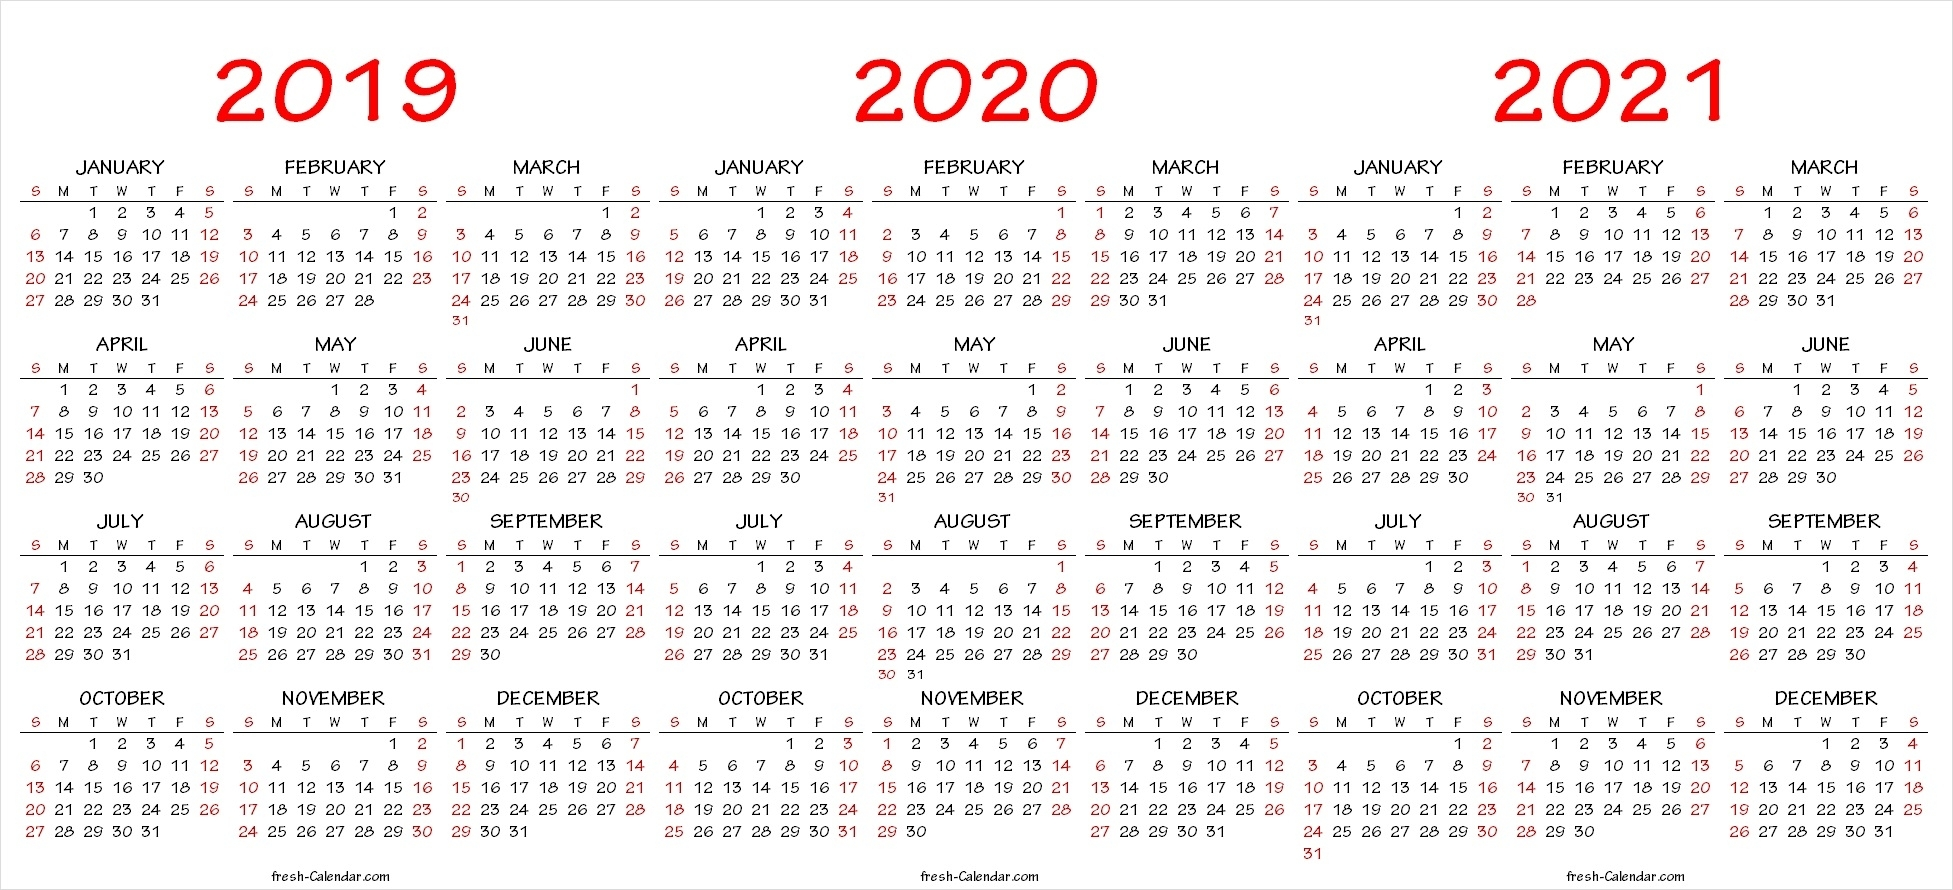 Three Yearly Calendar 2019 2020 2021 Printable Free | Blank Template inside Printable 3 Year Calendar 2019 2020 2021